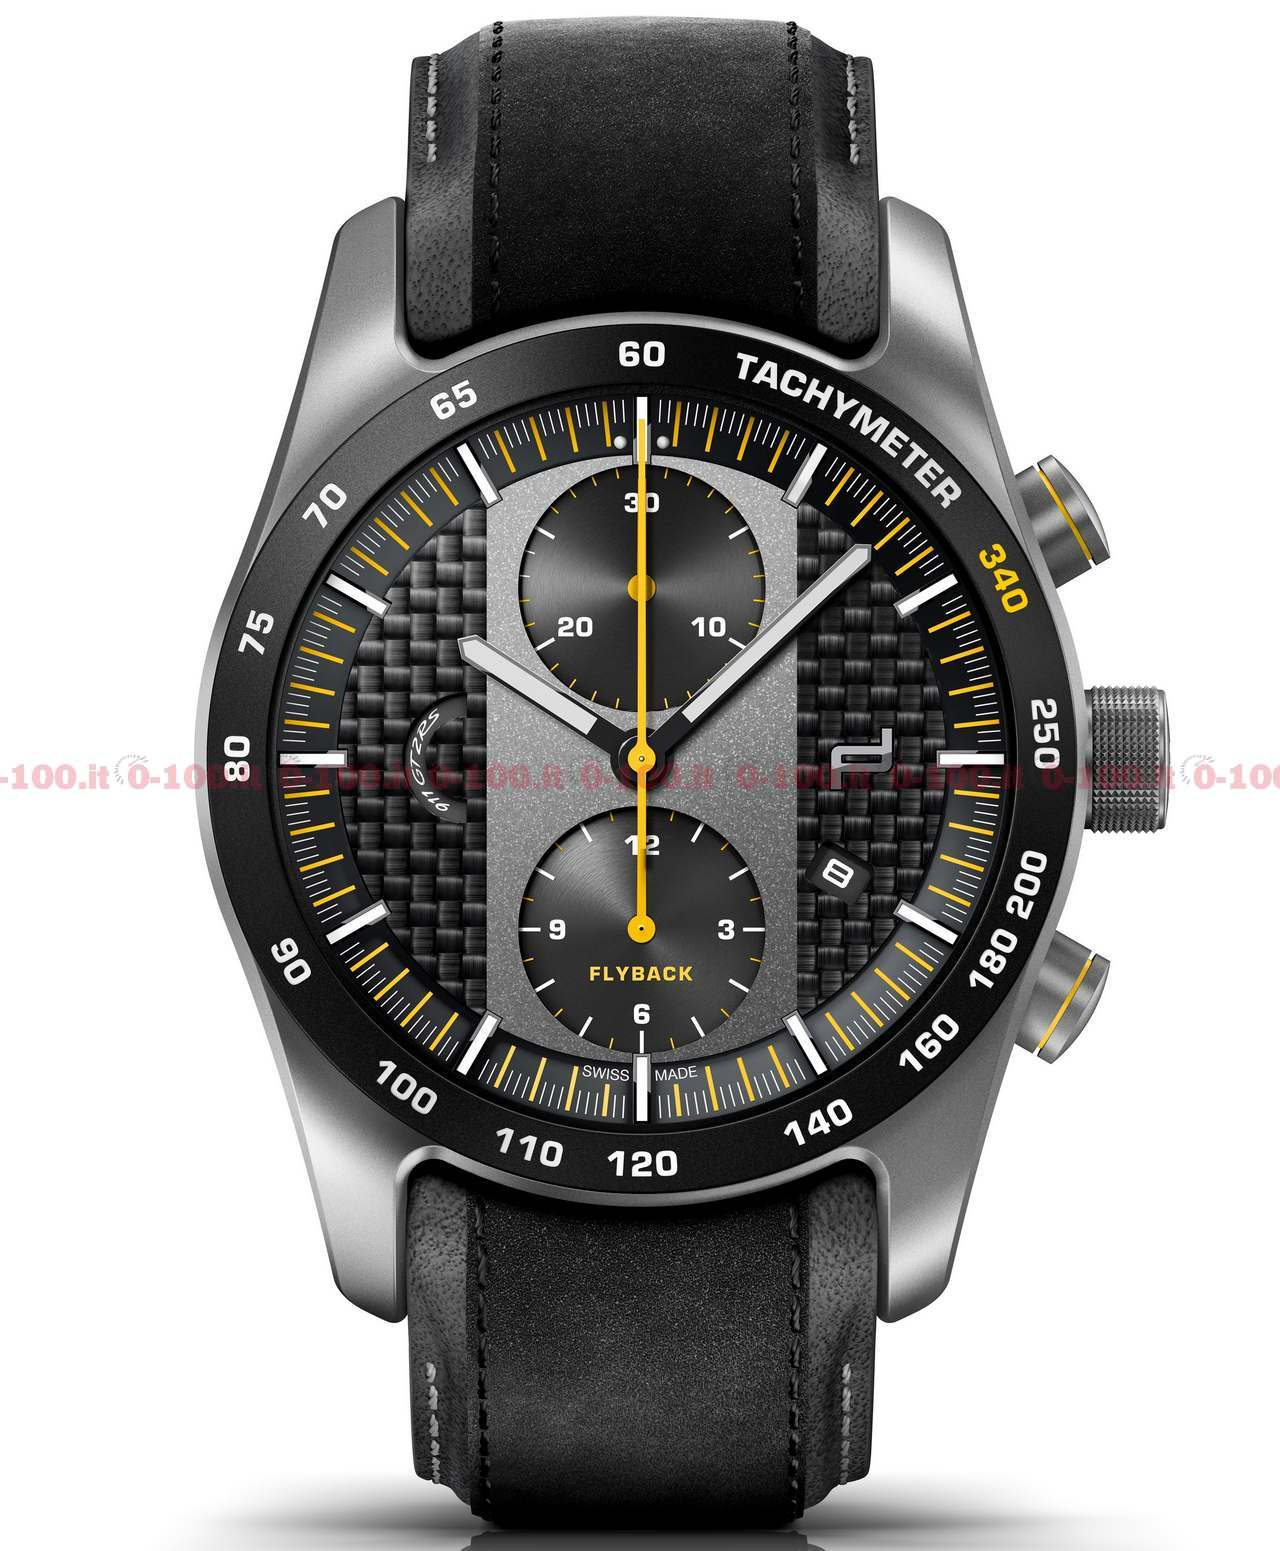 Porsche Design Chronograph 911 GT2 RS_price_prezzo_0-1004